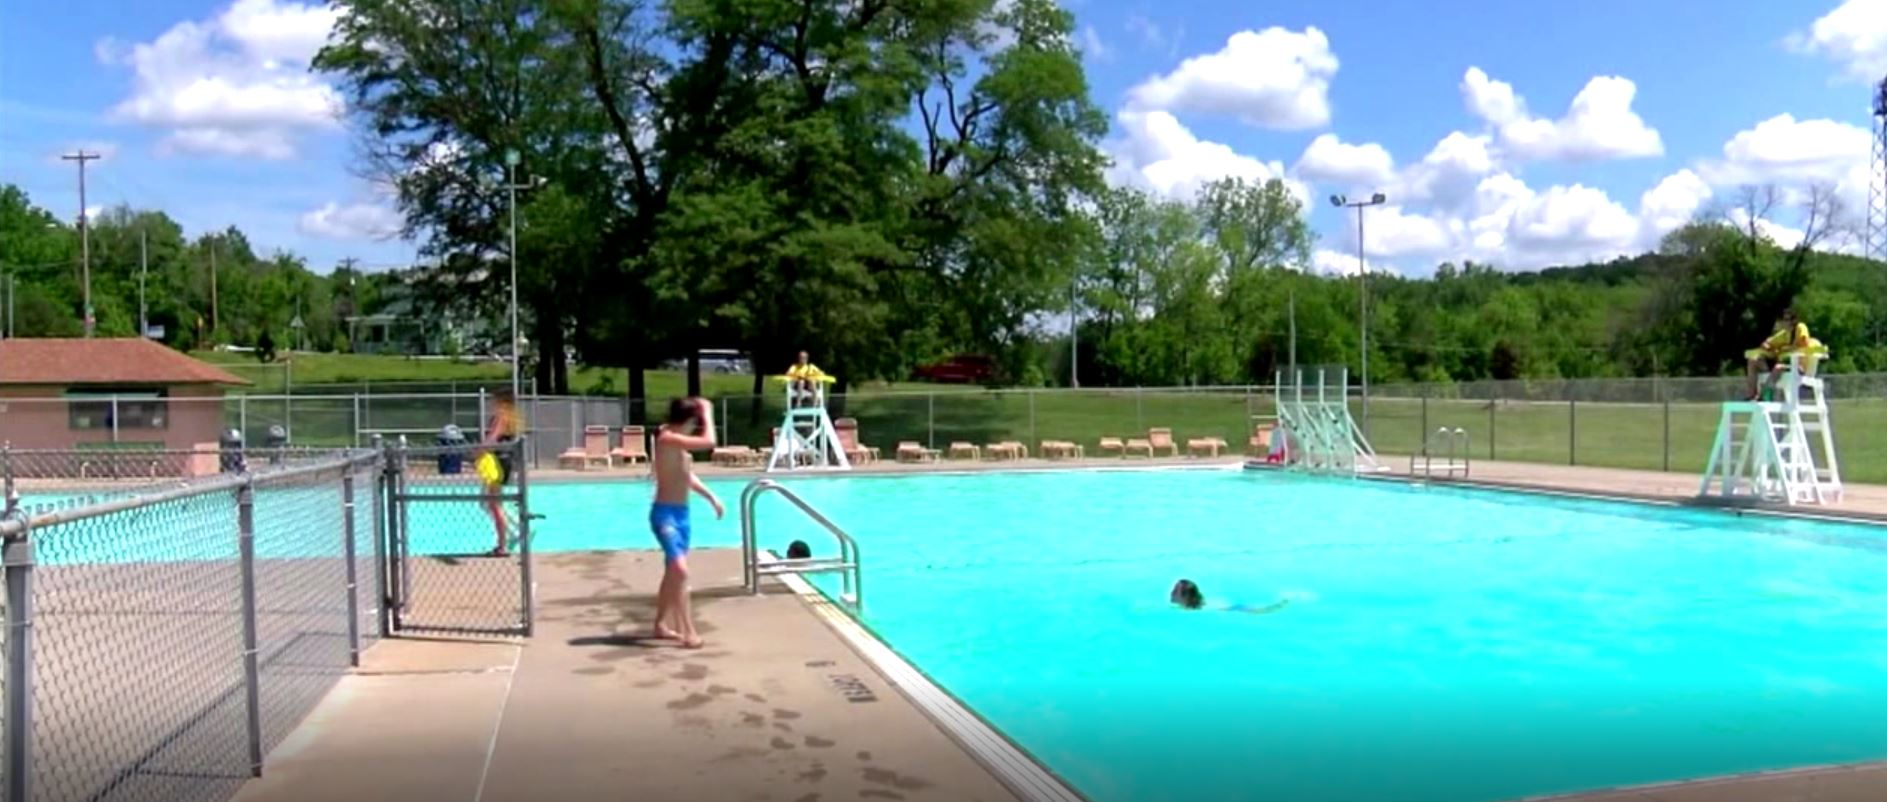 Image for Krug Pool reopens for the summer season